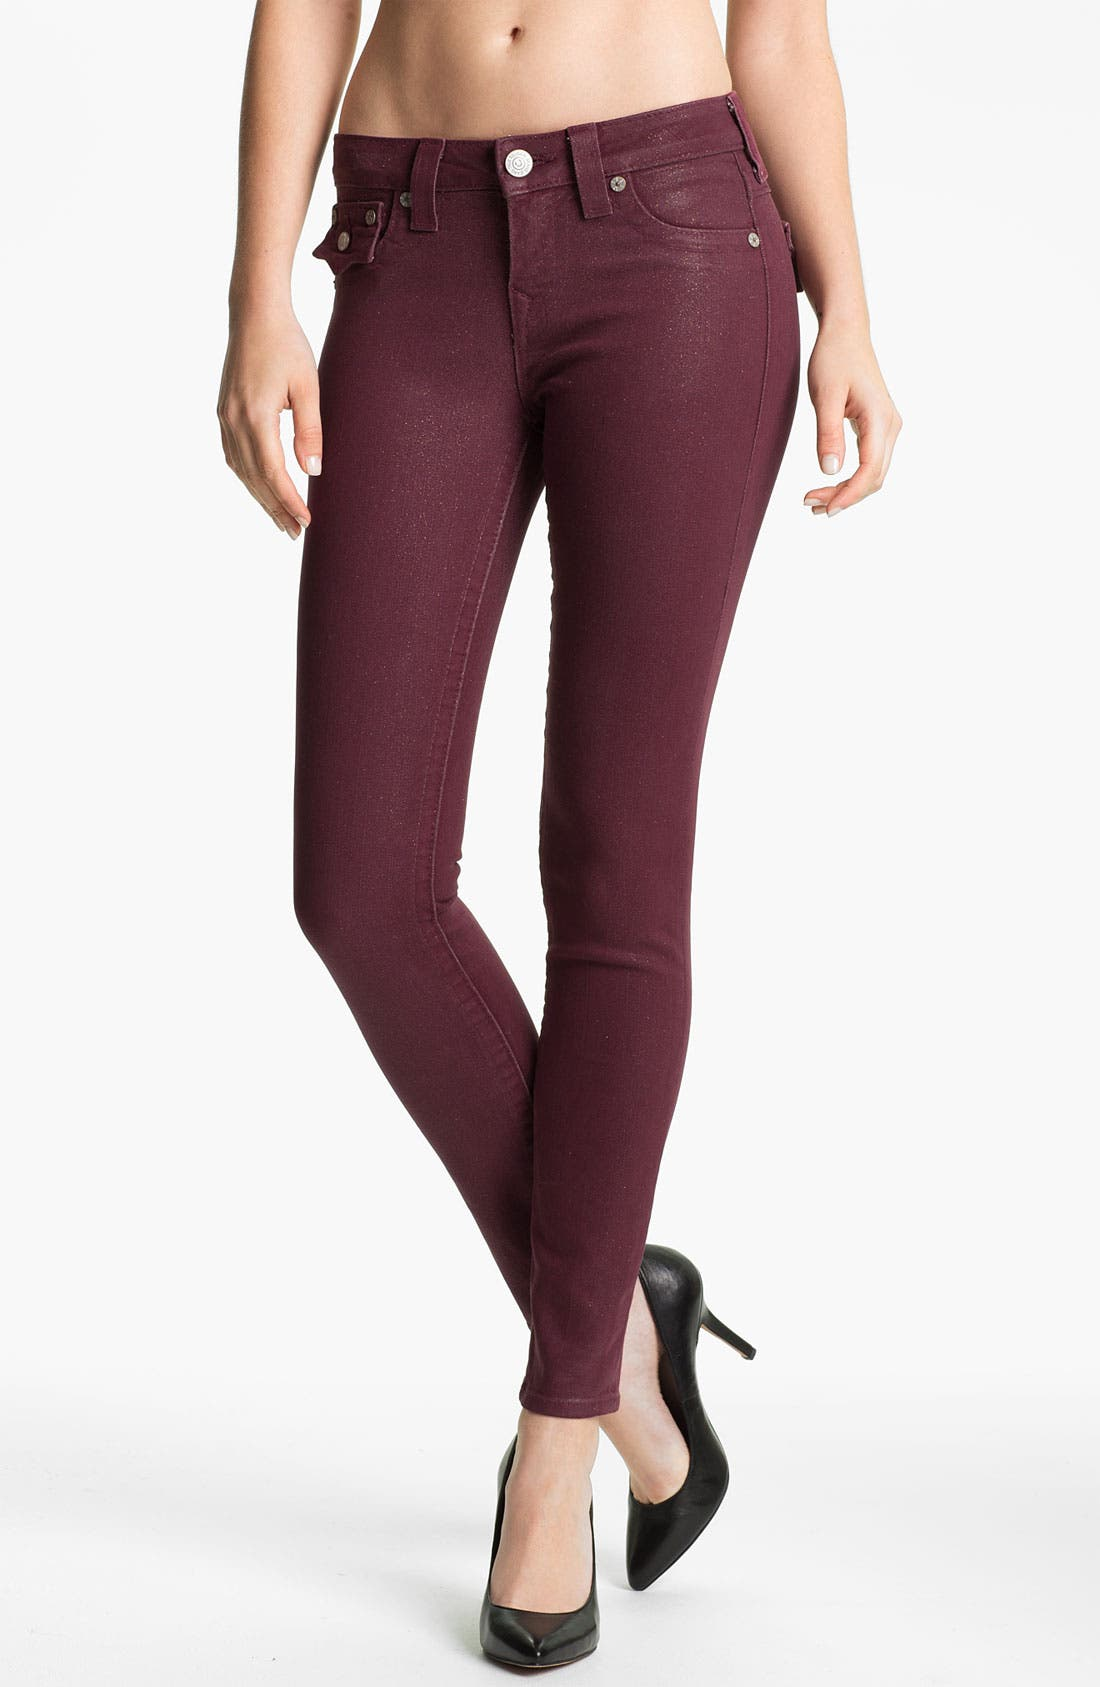 Main Image - True Religion Brand Jeans 'Serena' Coated Skinny Leg Jeans (Maroon)